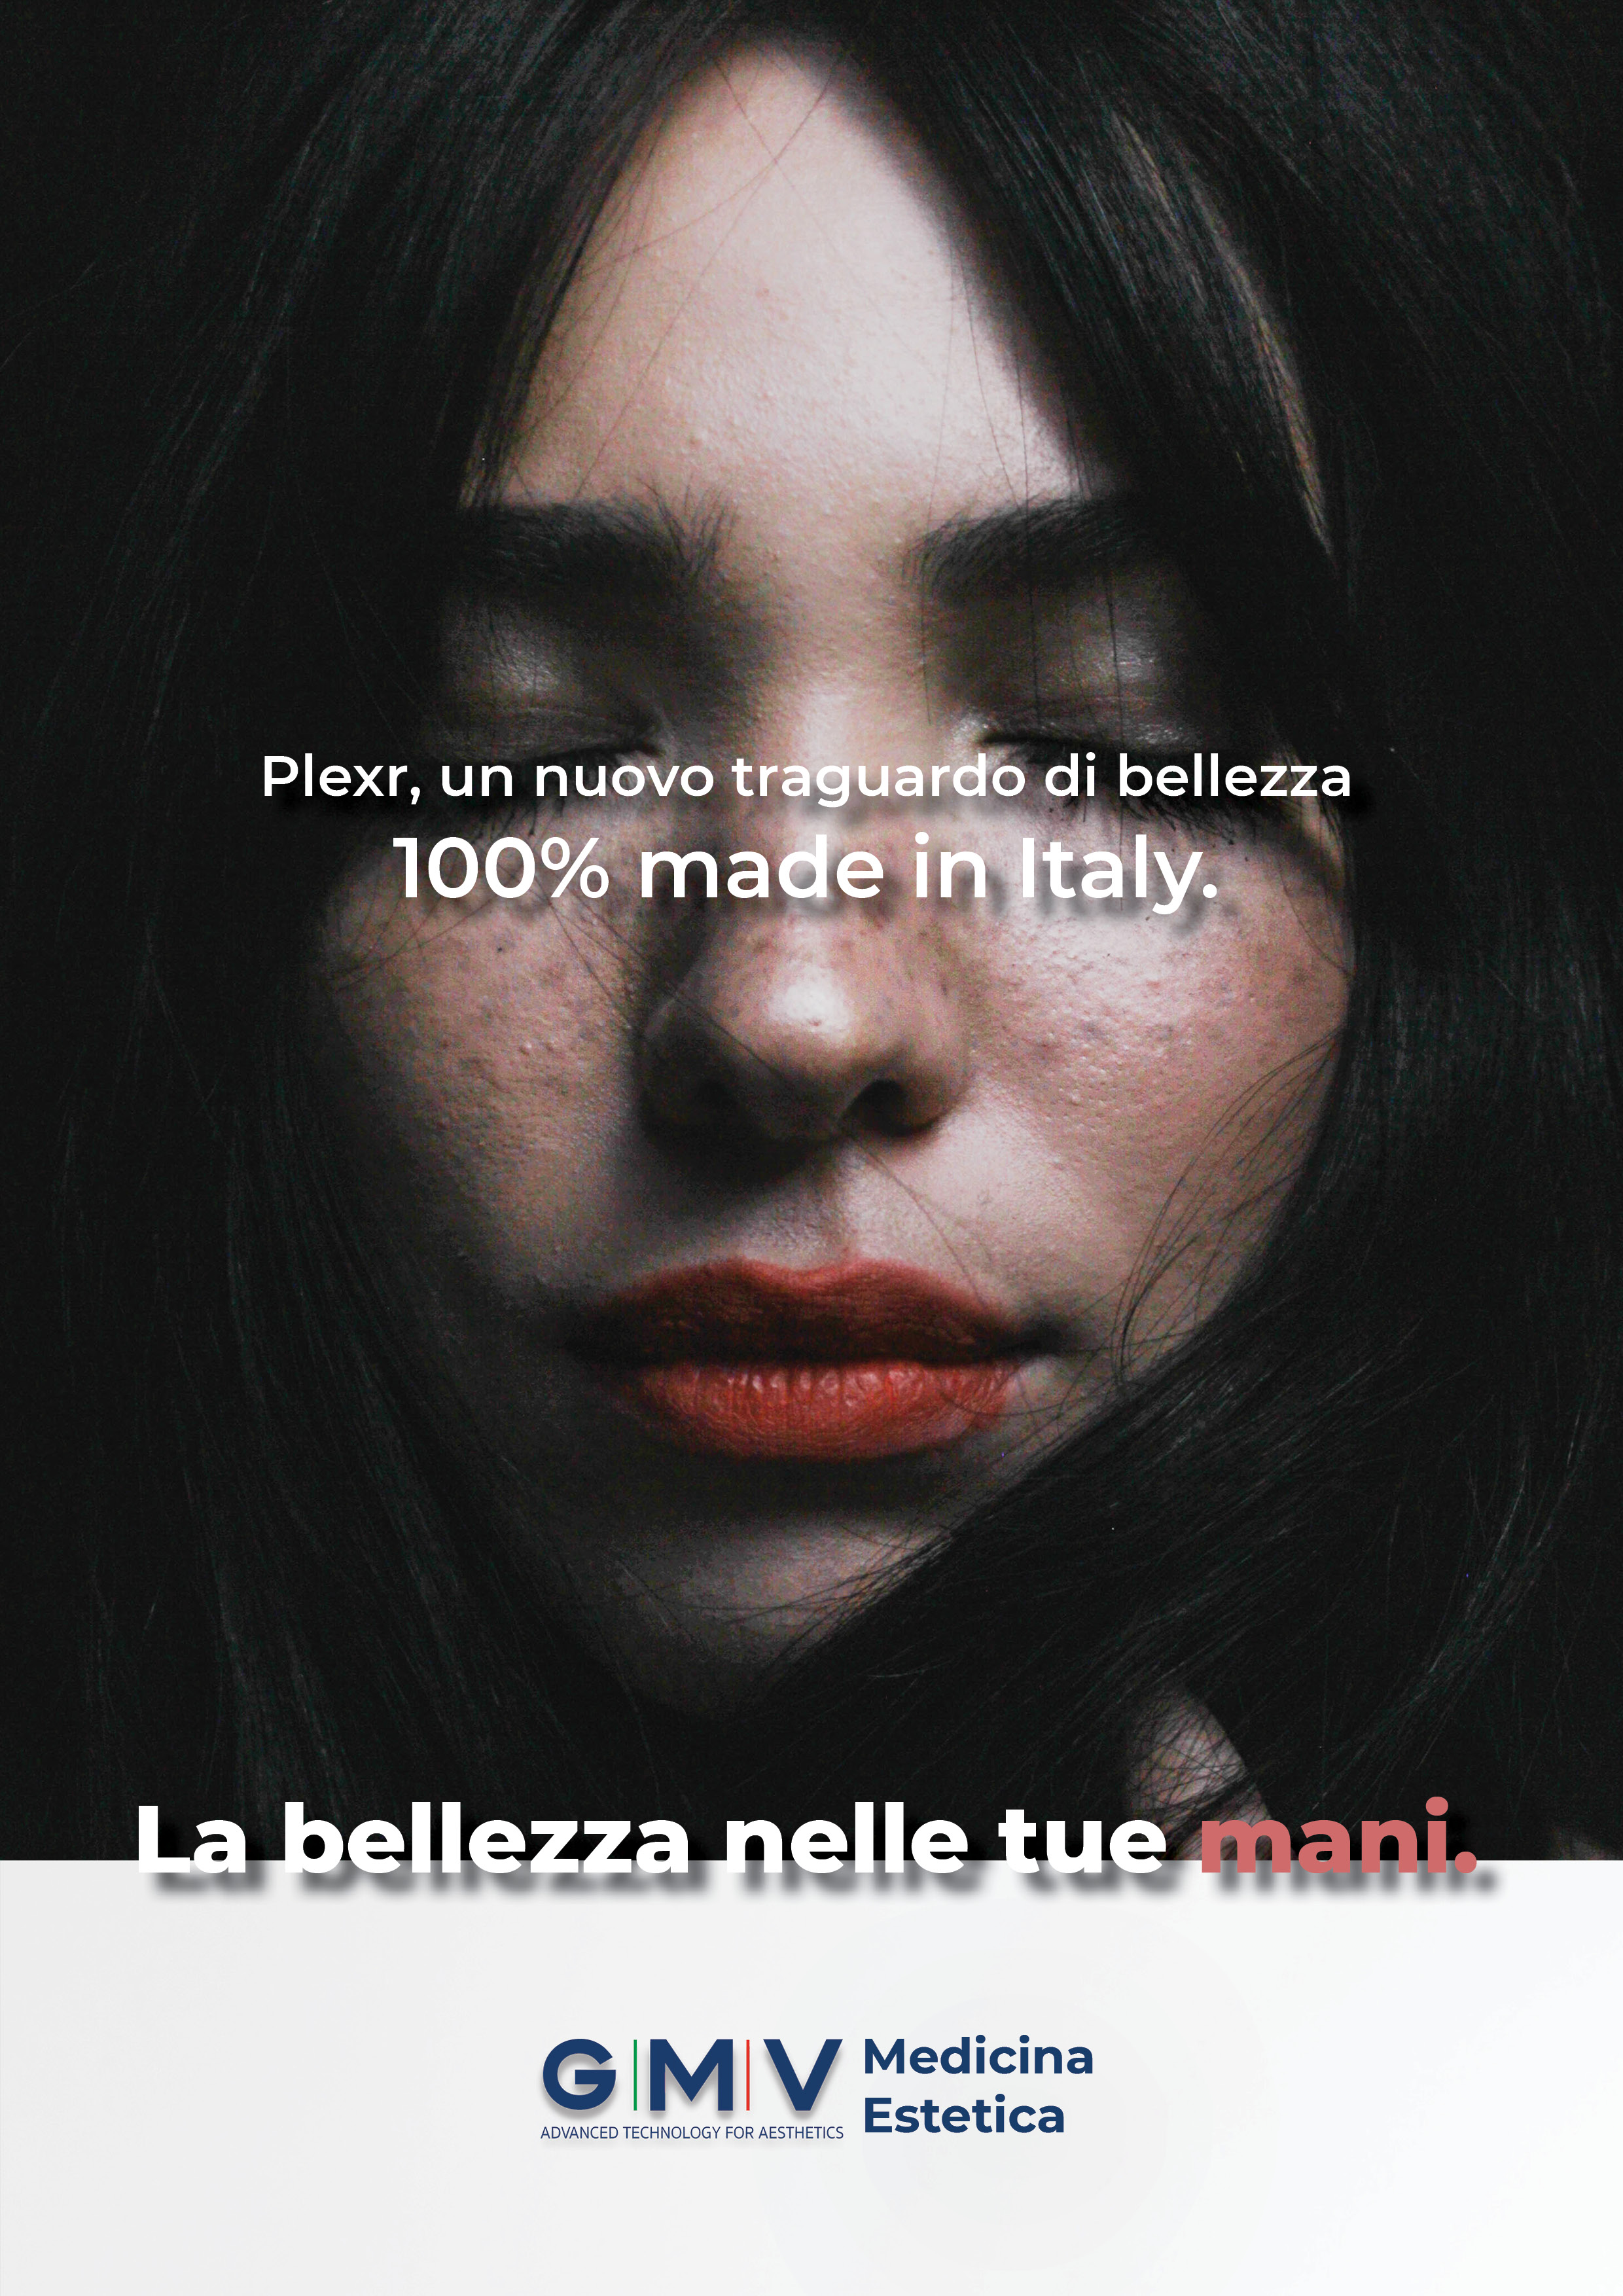 Translation: Plexr, a new benchmark in beauty, 100% made in Italy.